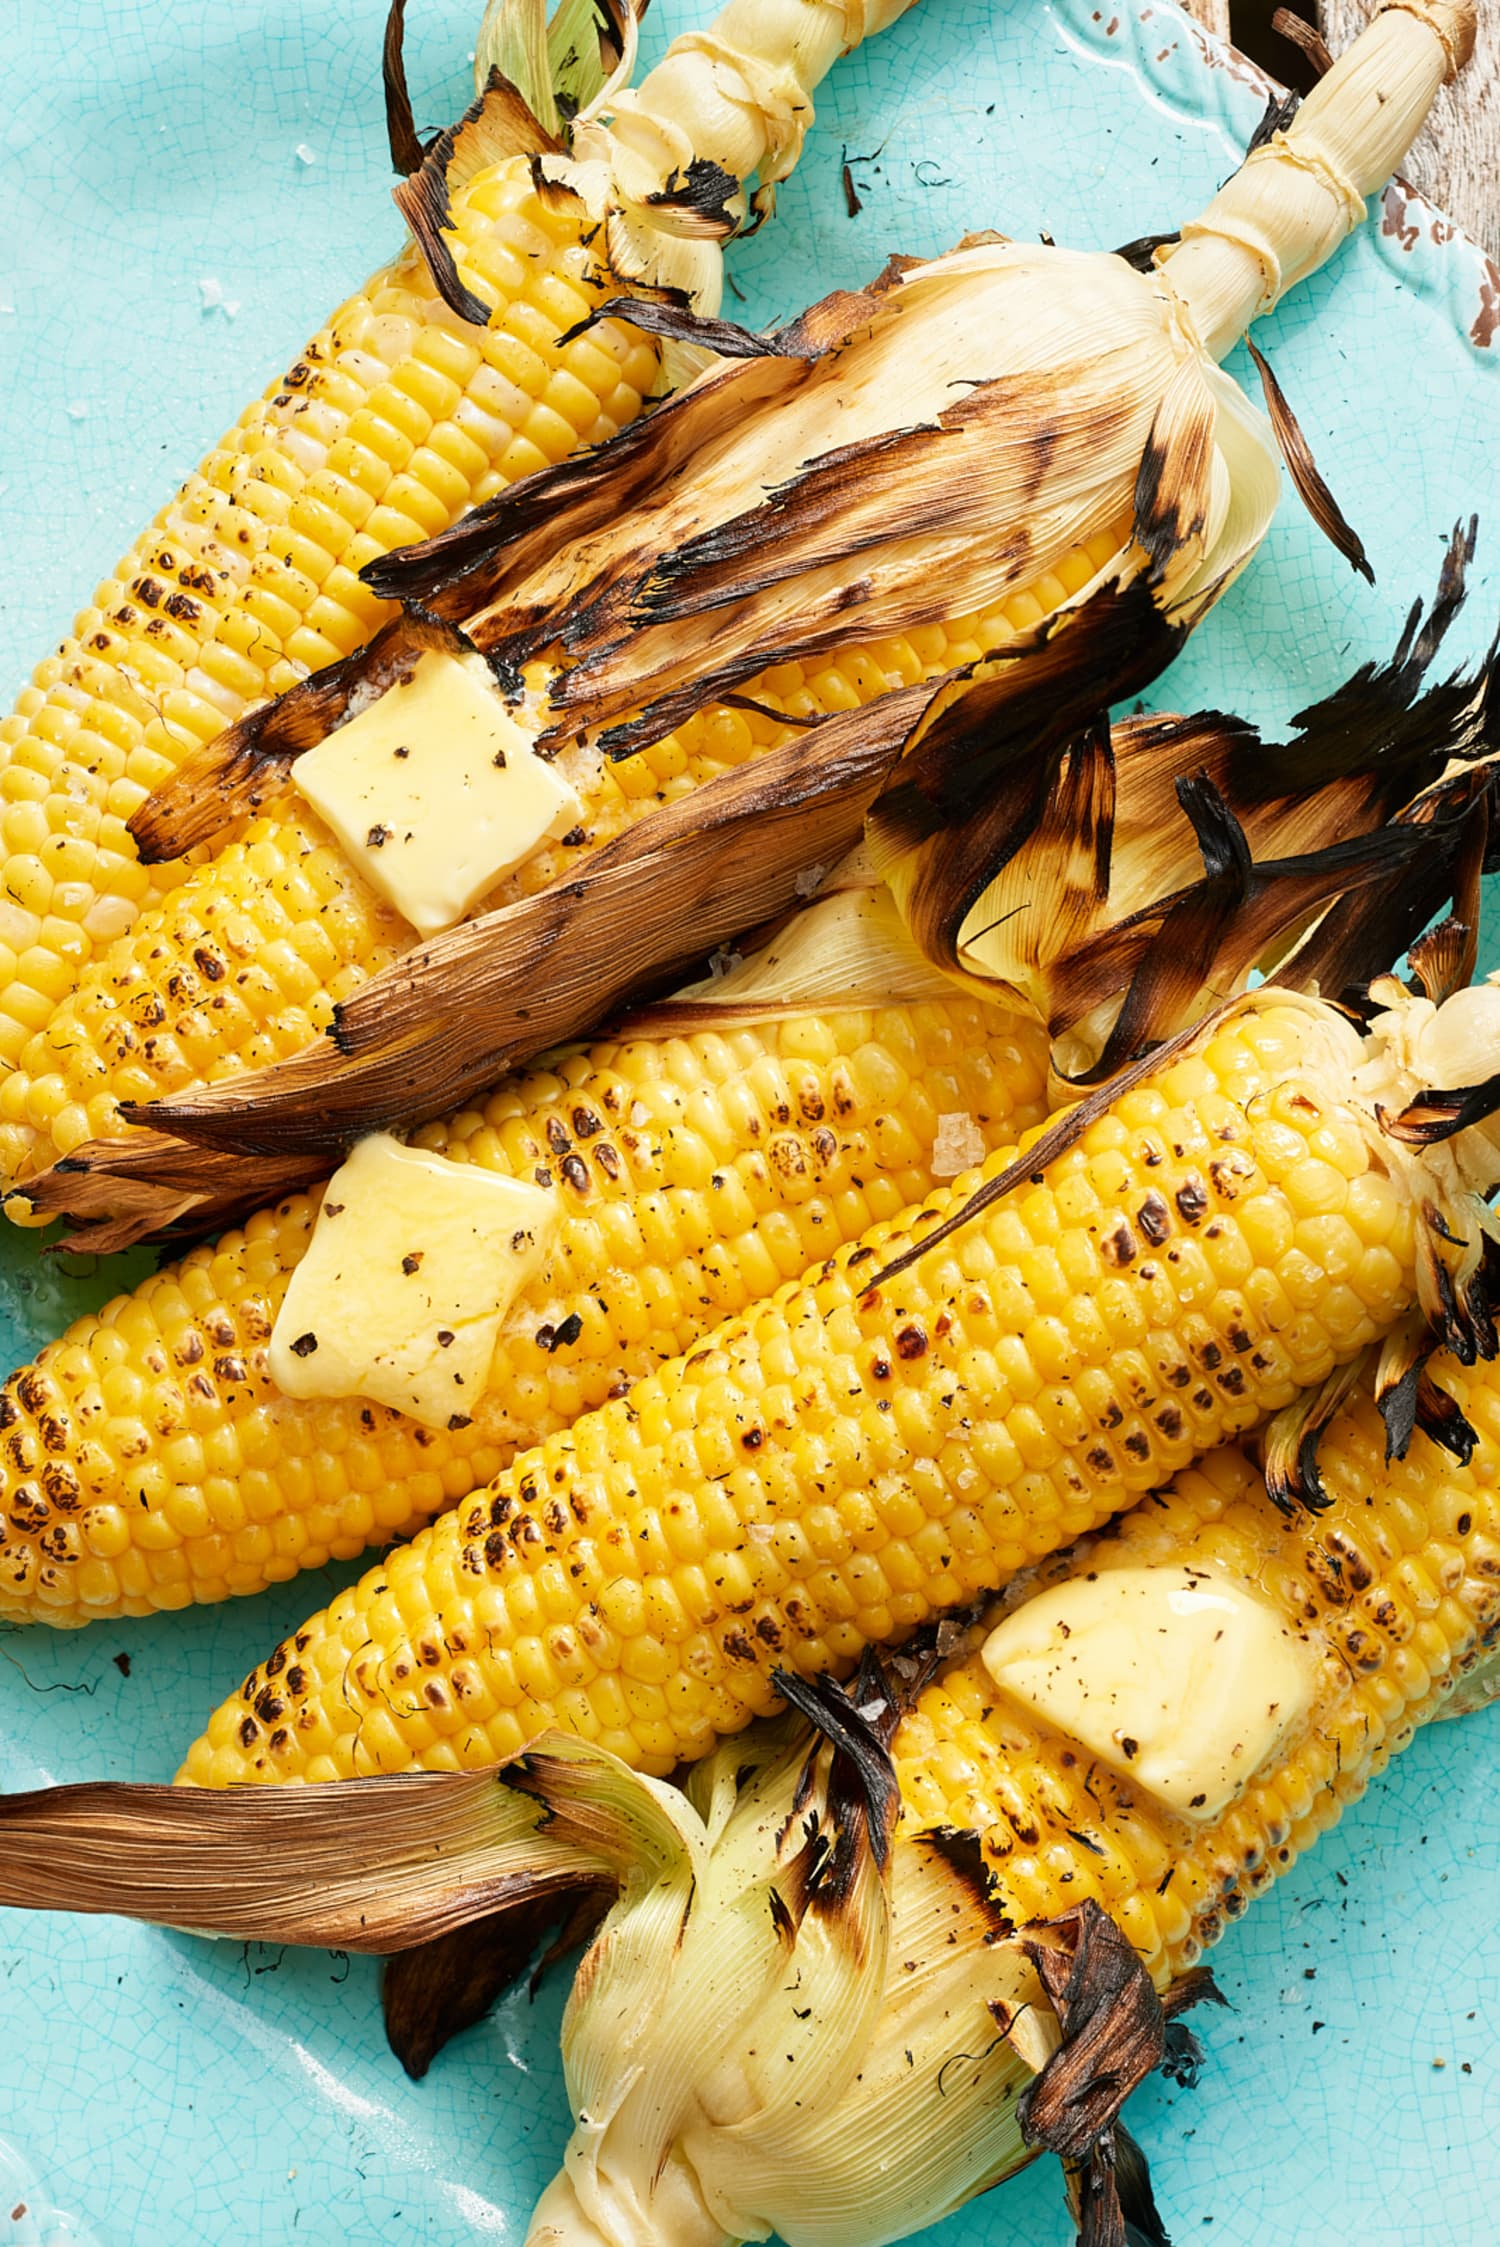 How To Grill the Best Corn on the Cob